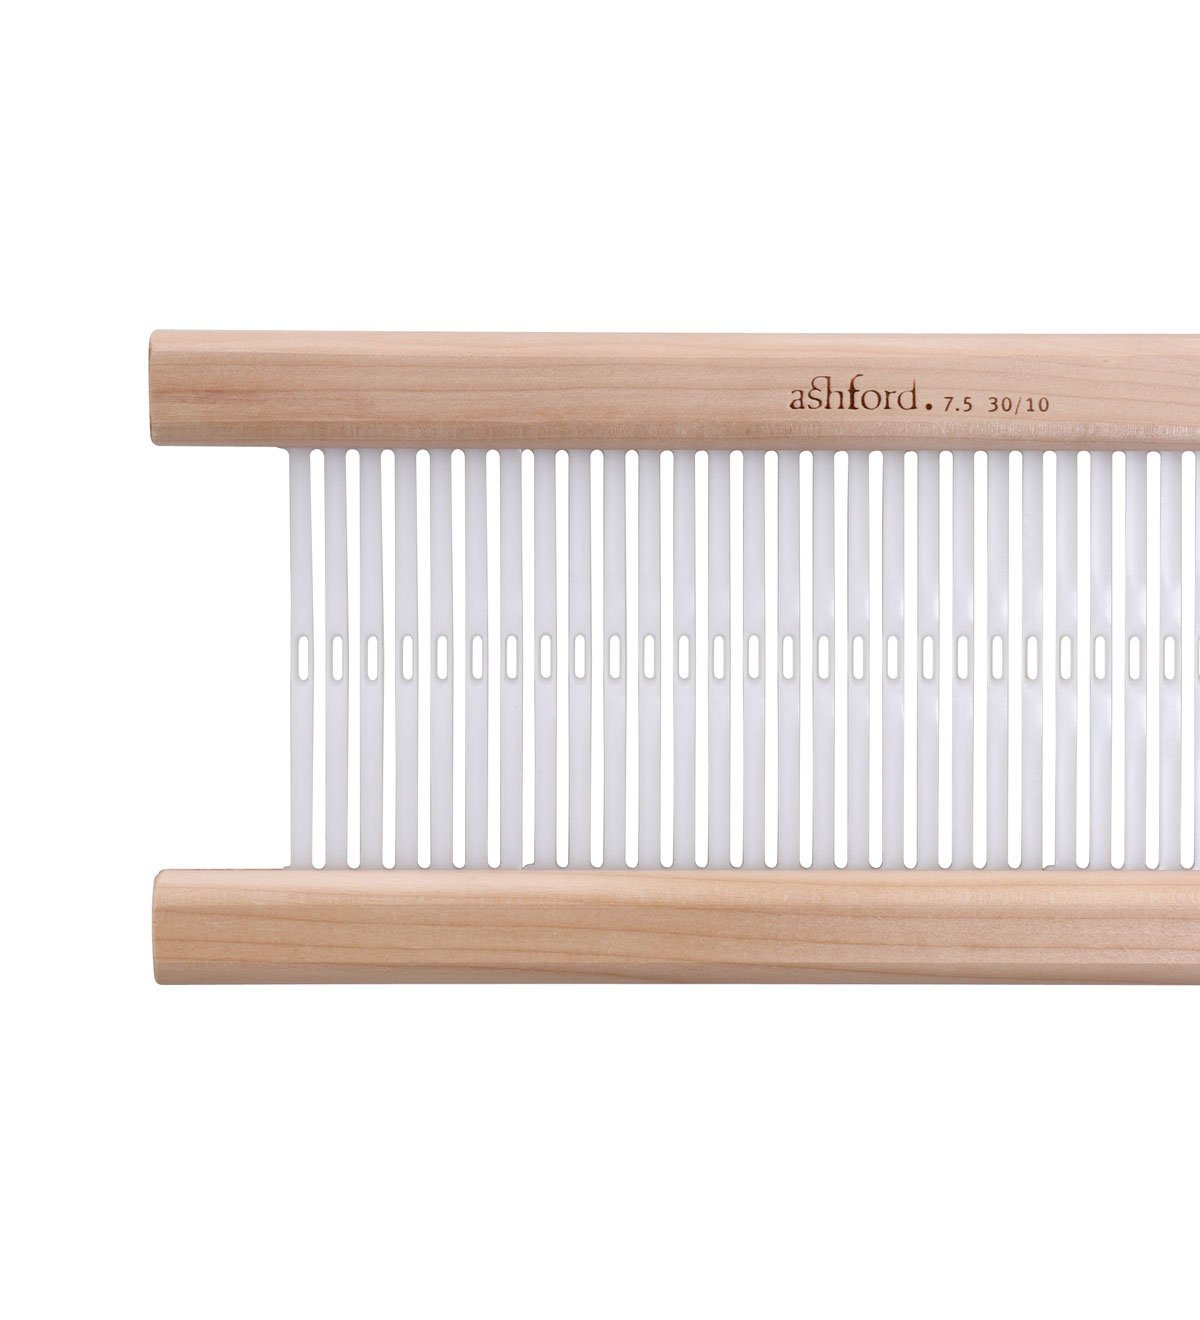 Ashford 16 7.5 Rigid Heddle